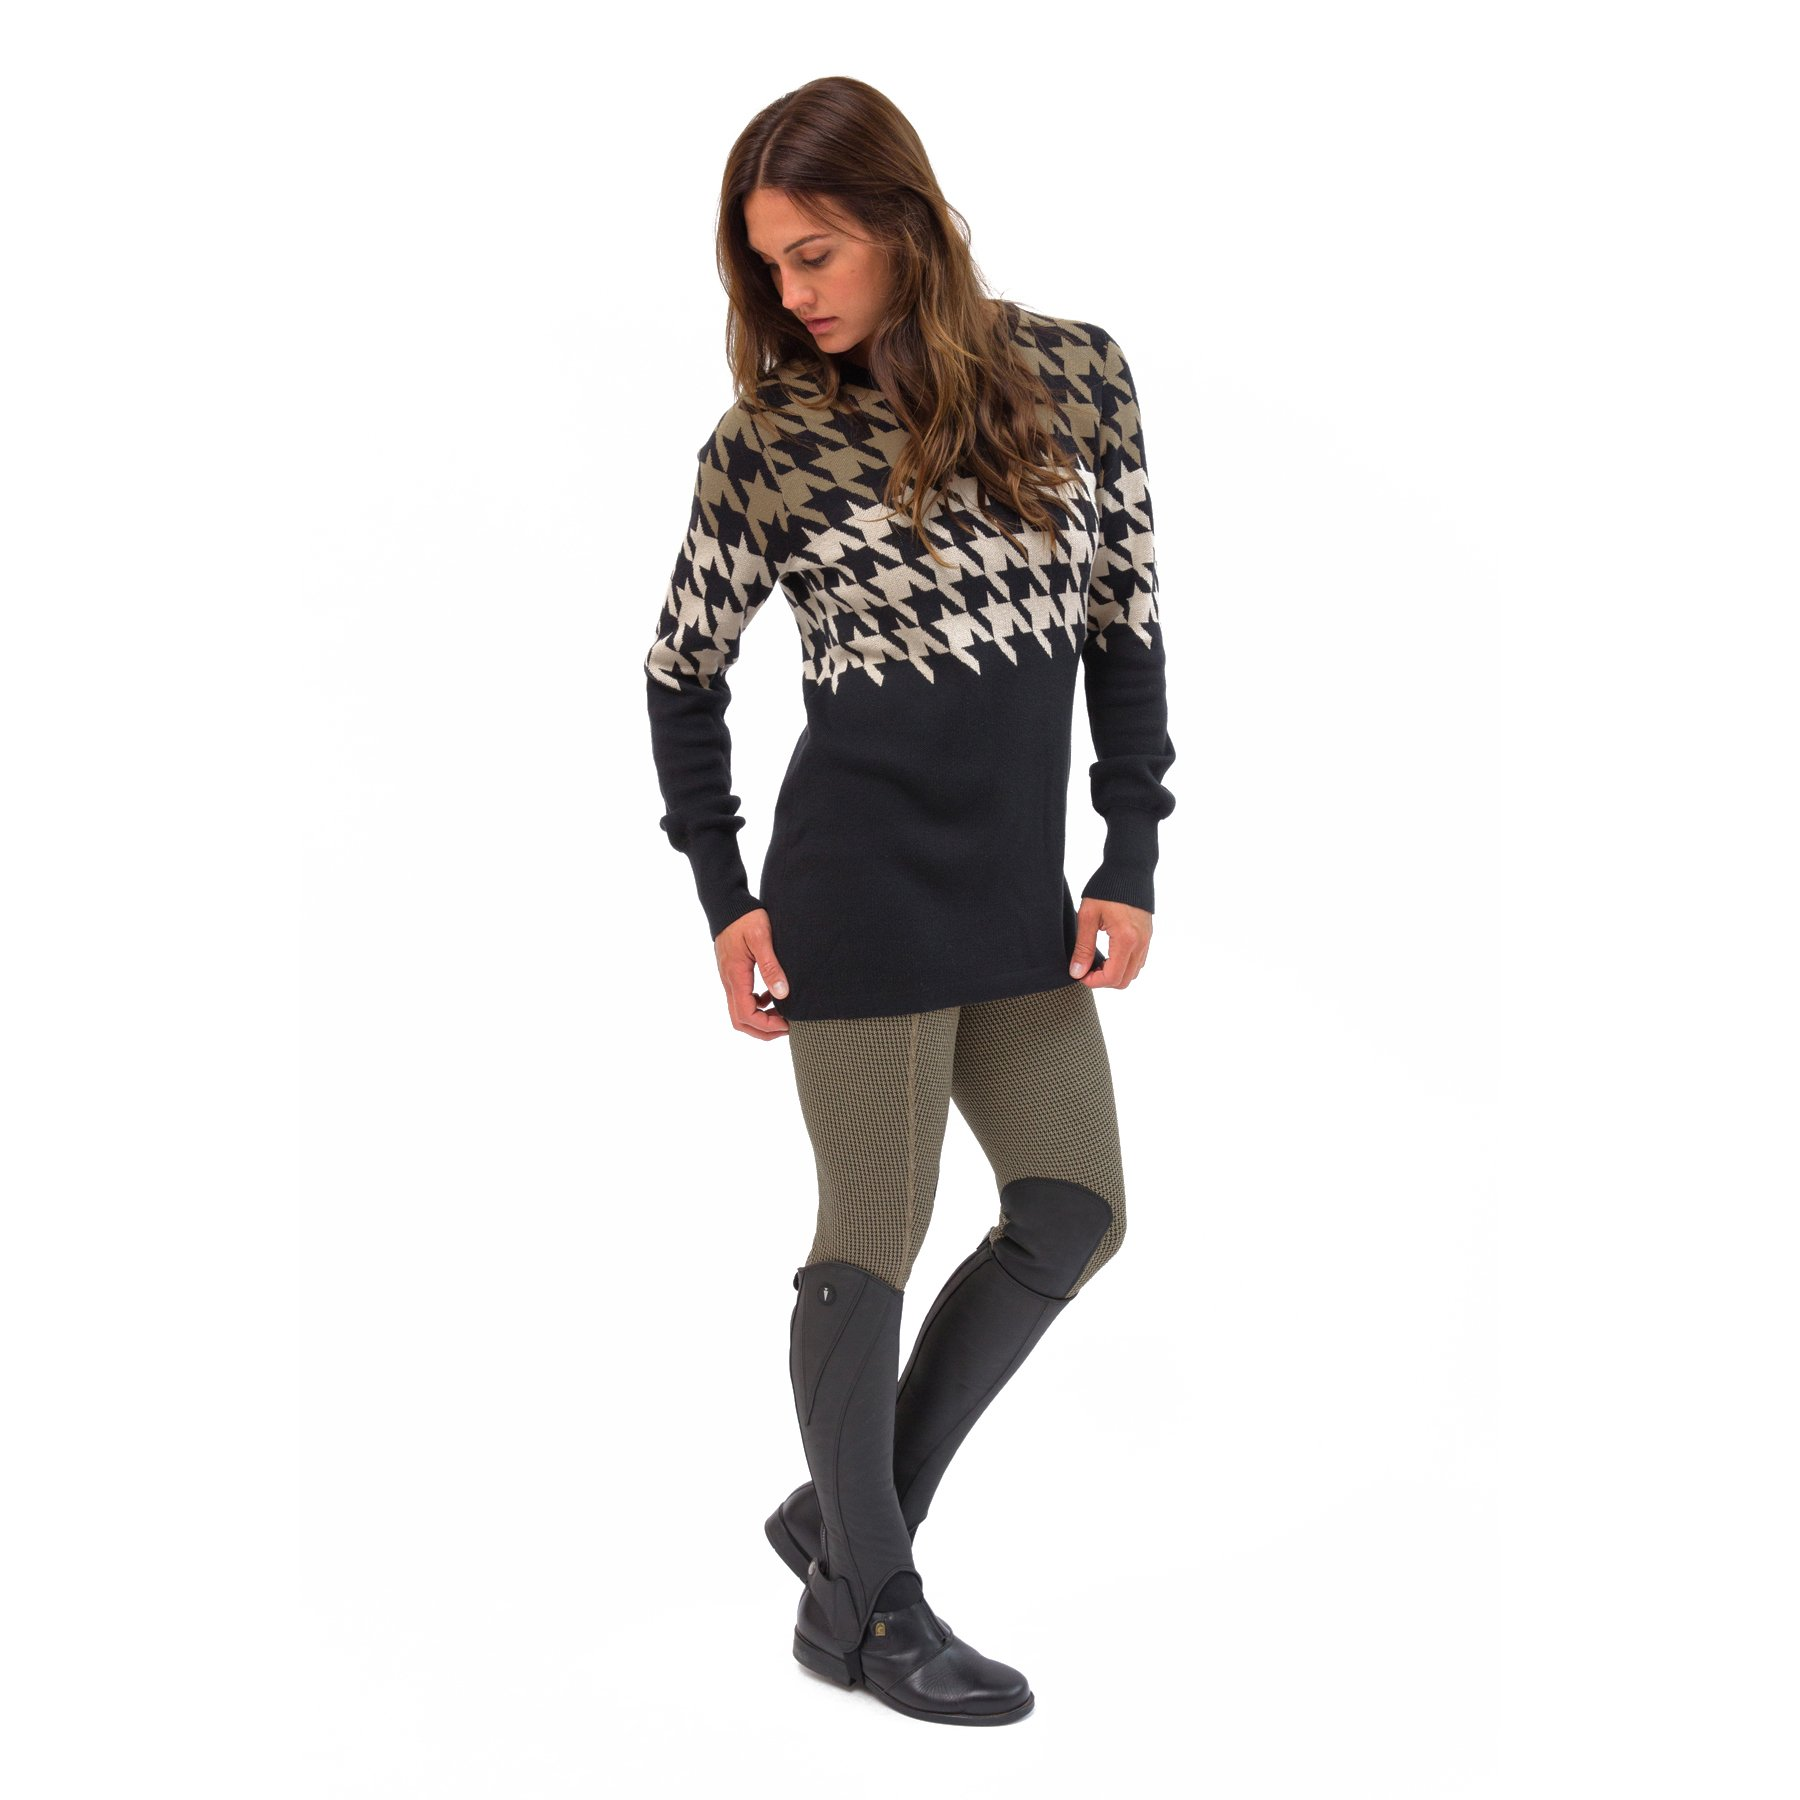 Kerrits-Equestrian-Women-039-s-Houndstooth-Tunic-Sweater-with-Scoop-Neck miniature 8